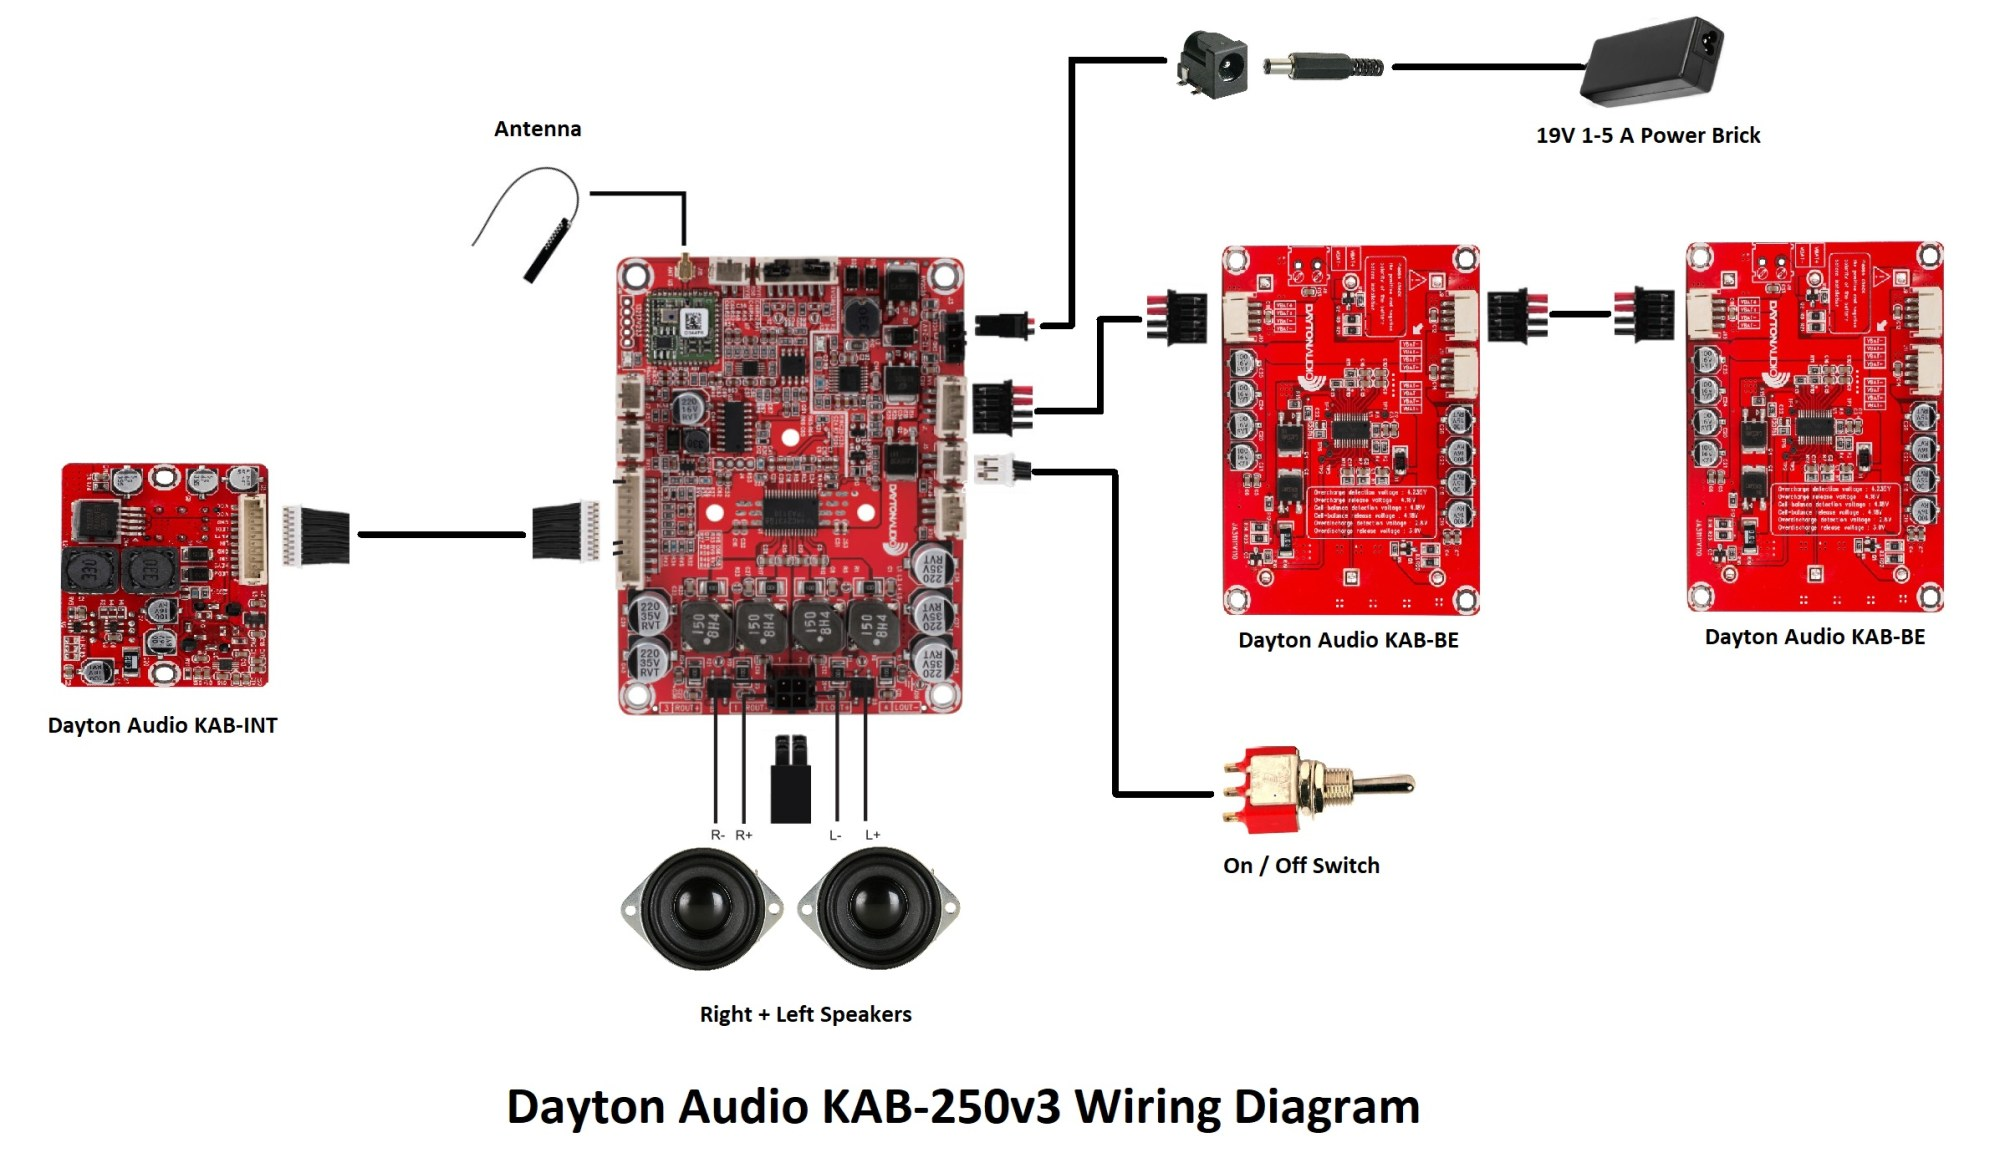 hight resolution of wiring diagram dayton audio kab 250v3 review